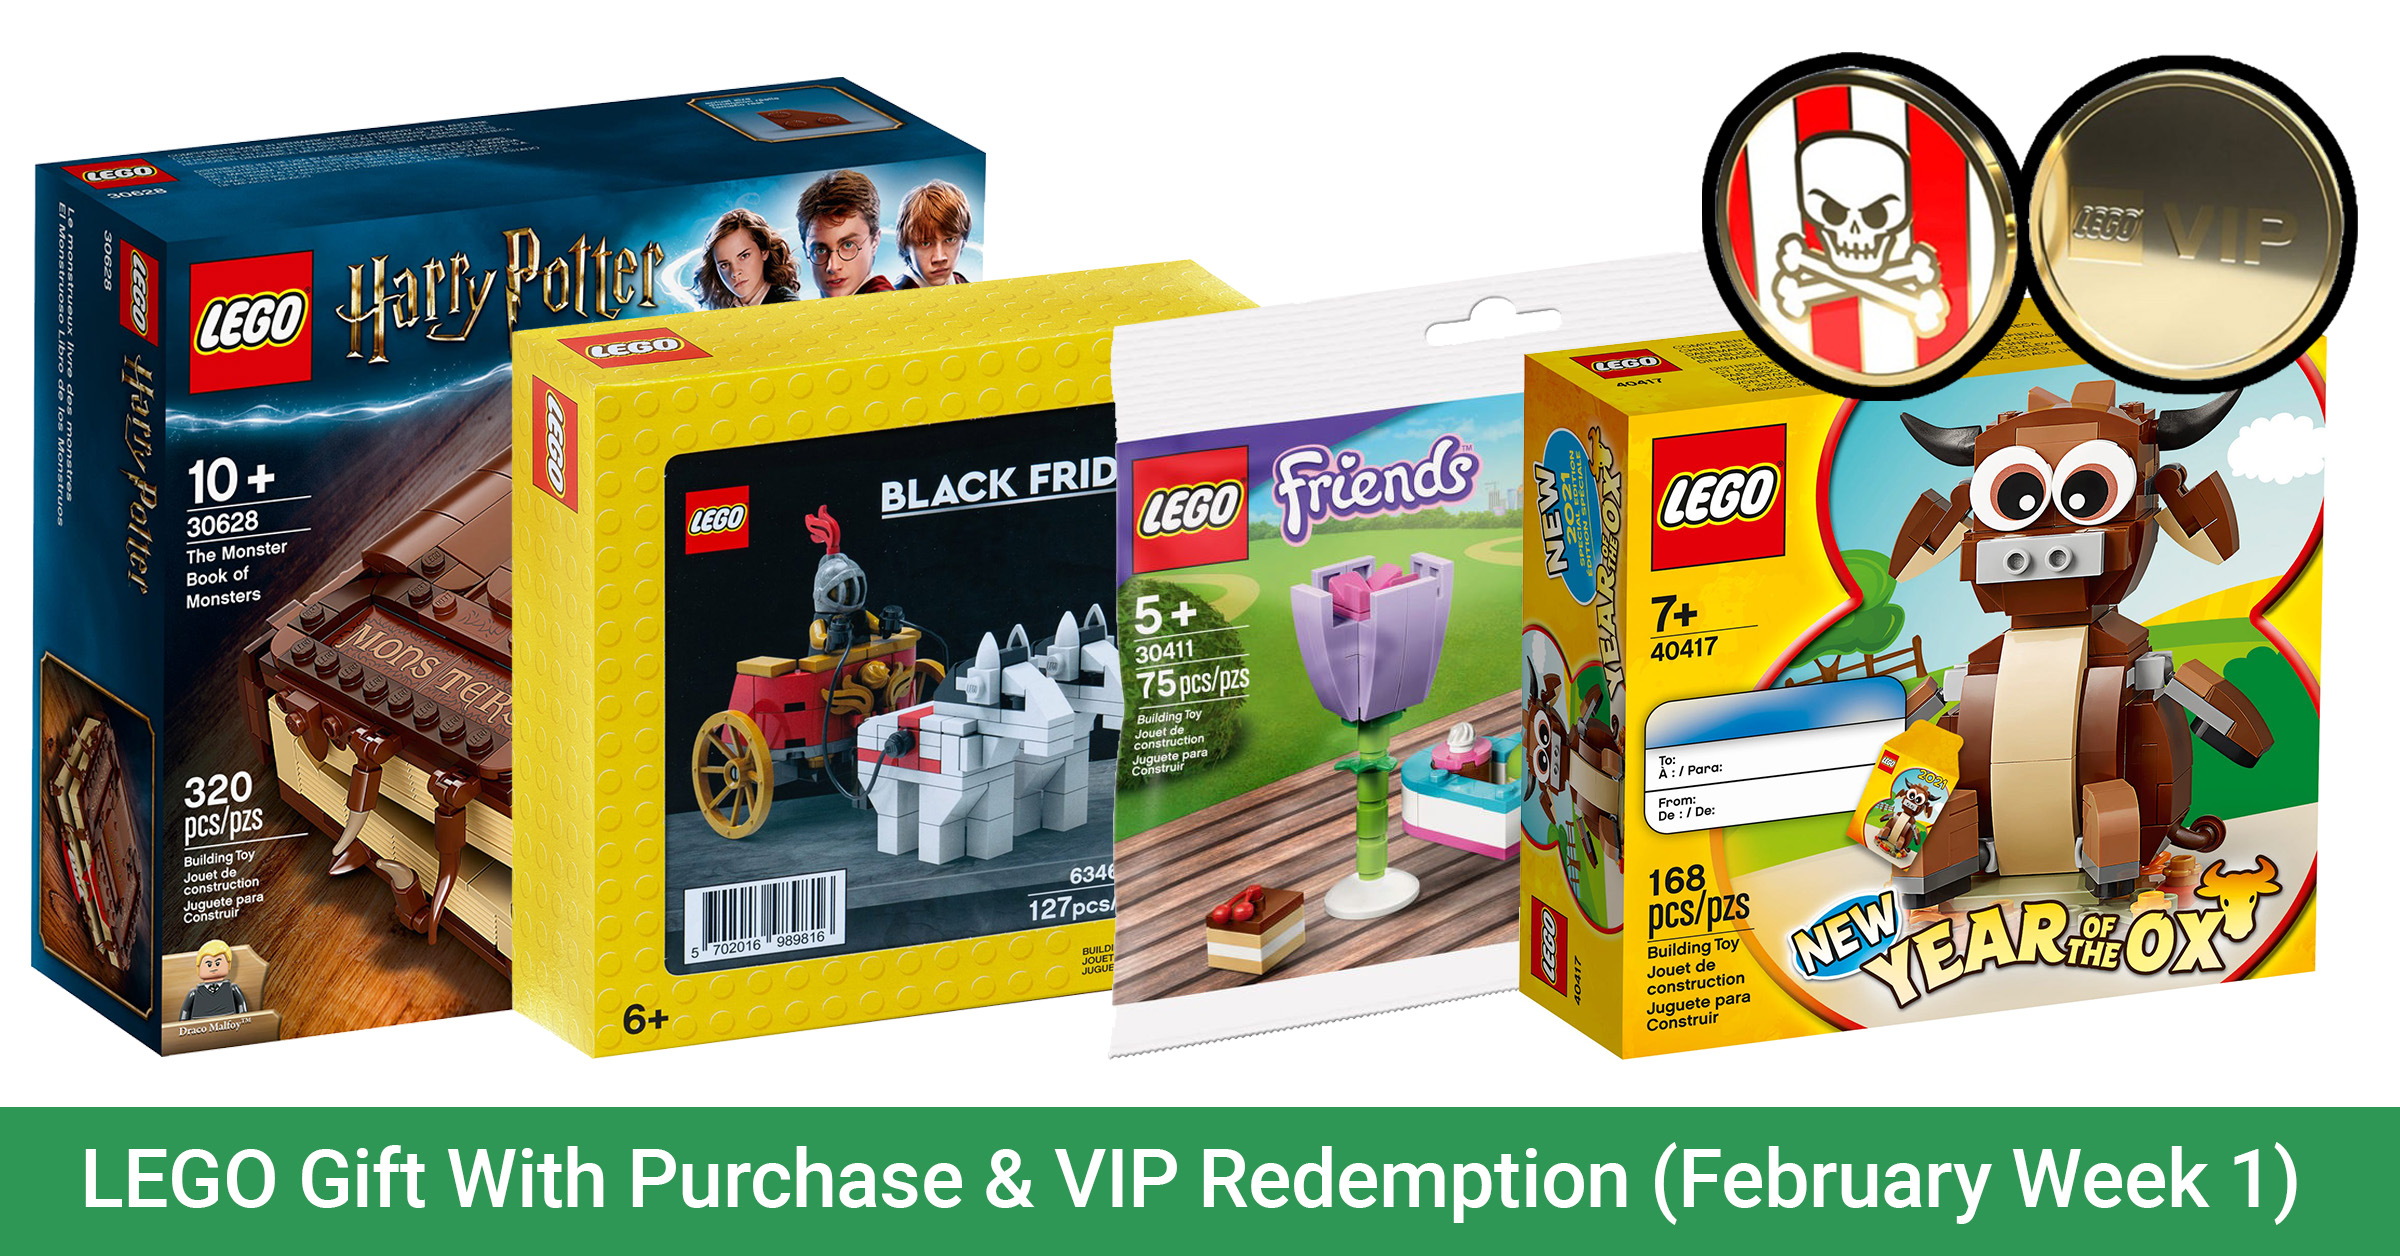 LEGO Gift With Purchase Feb 2021 with VIP Redemption | The ...